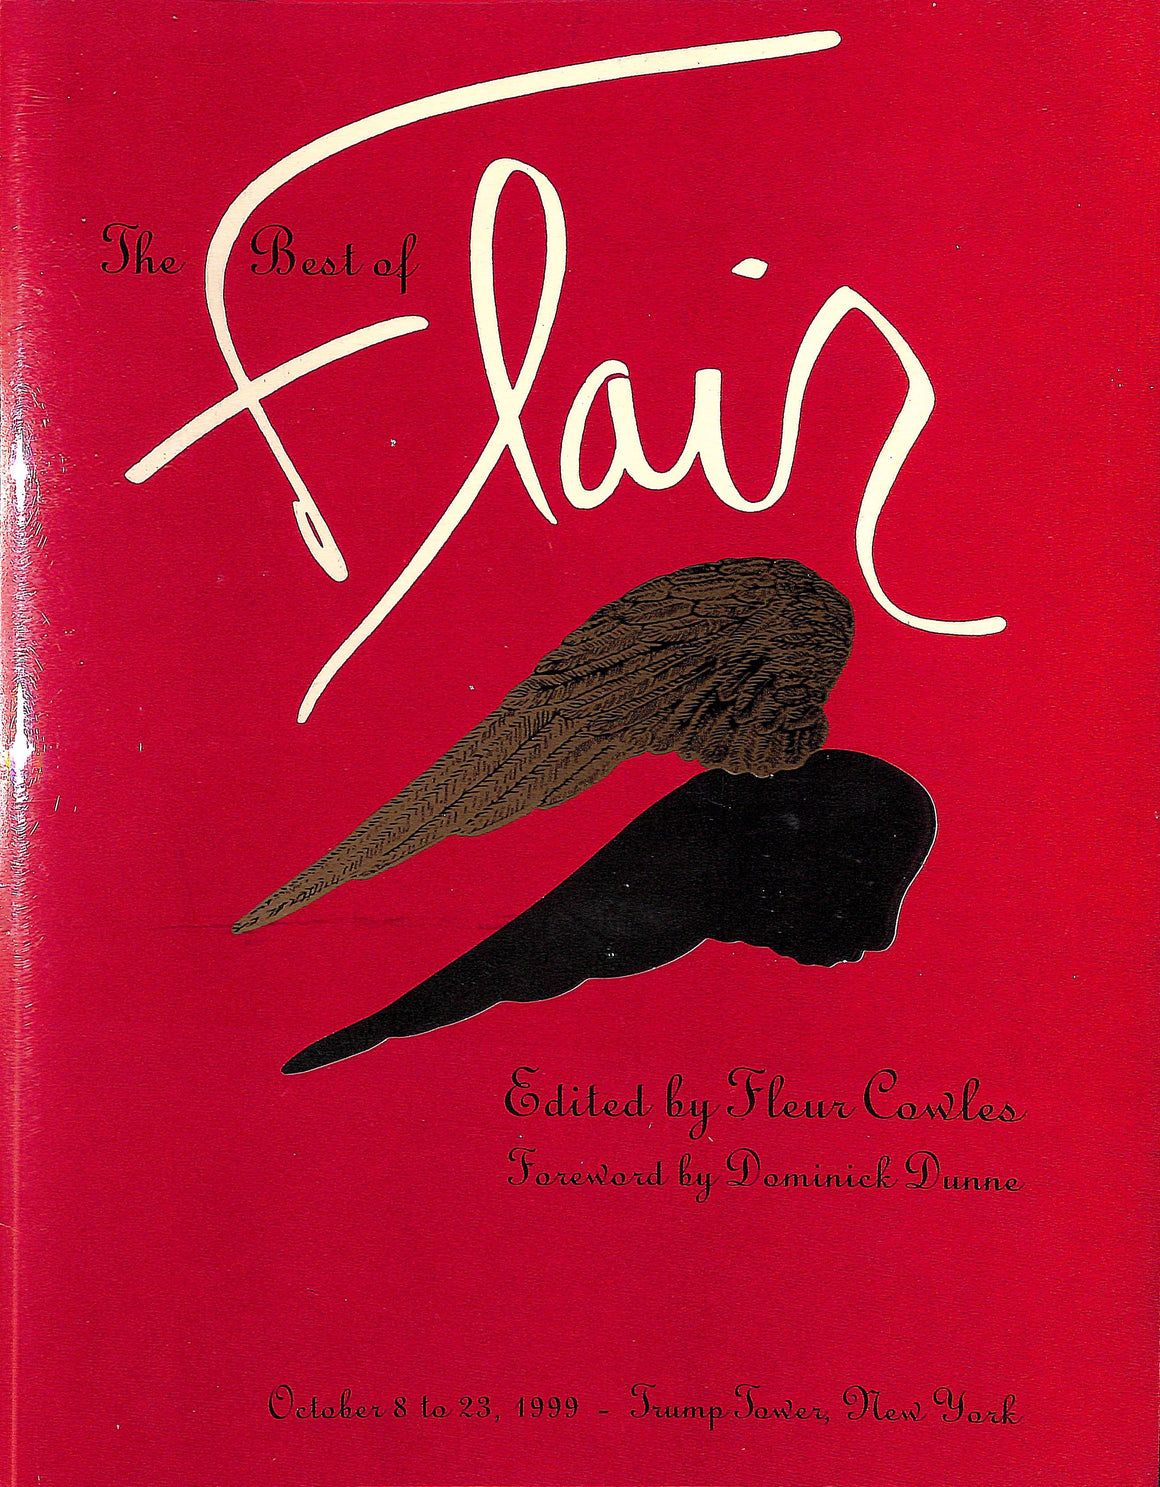 The Best of Flair by Fleur Cowles (SOLD)